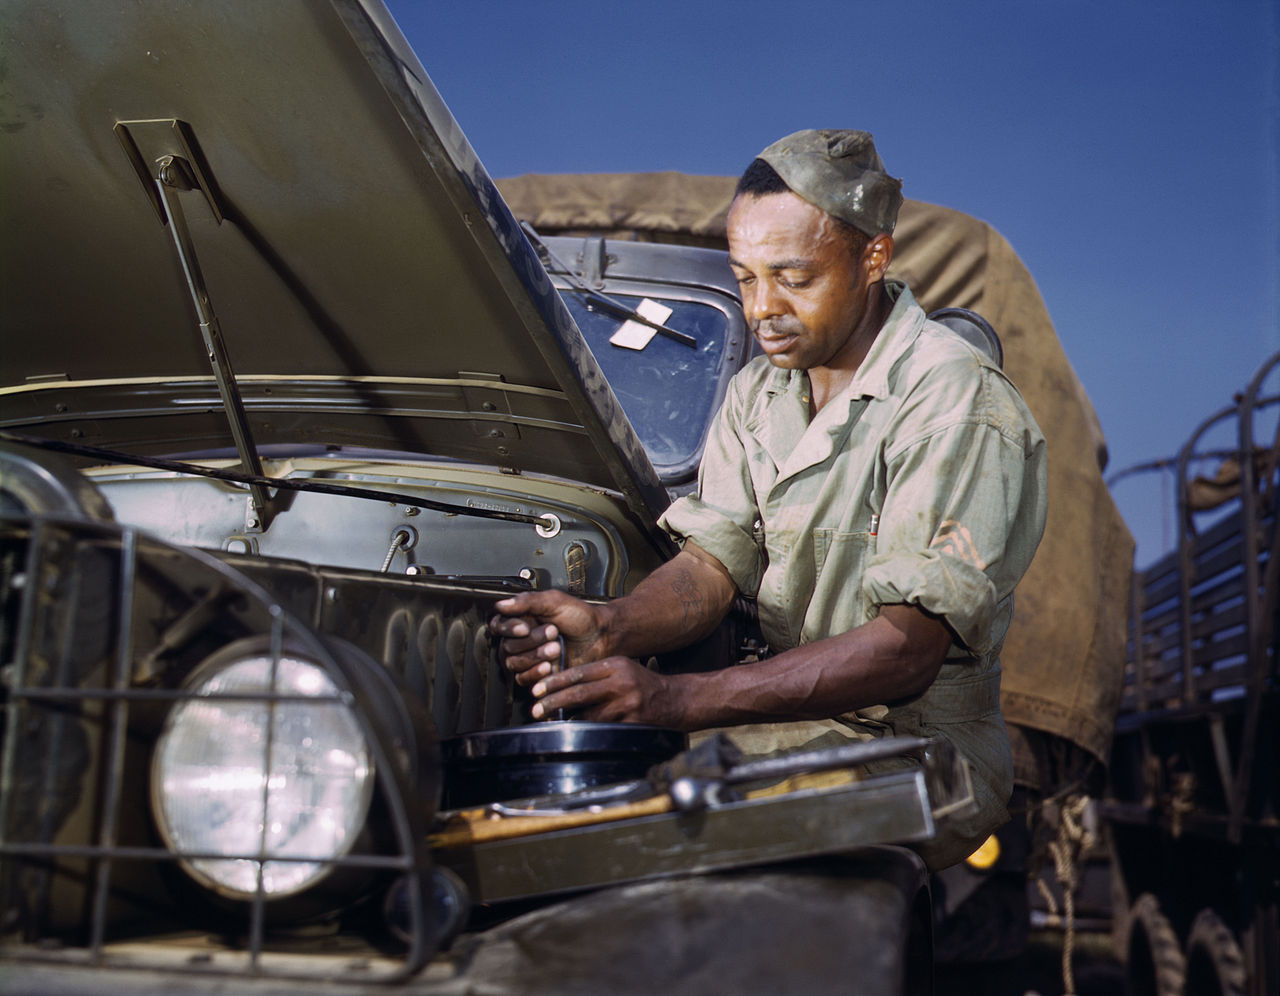 Cleaning the air filter of an army truck 1942